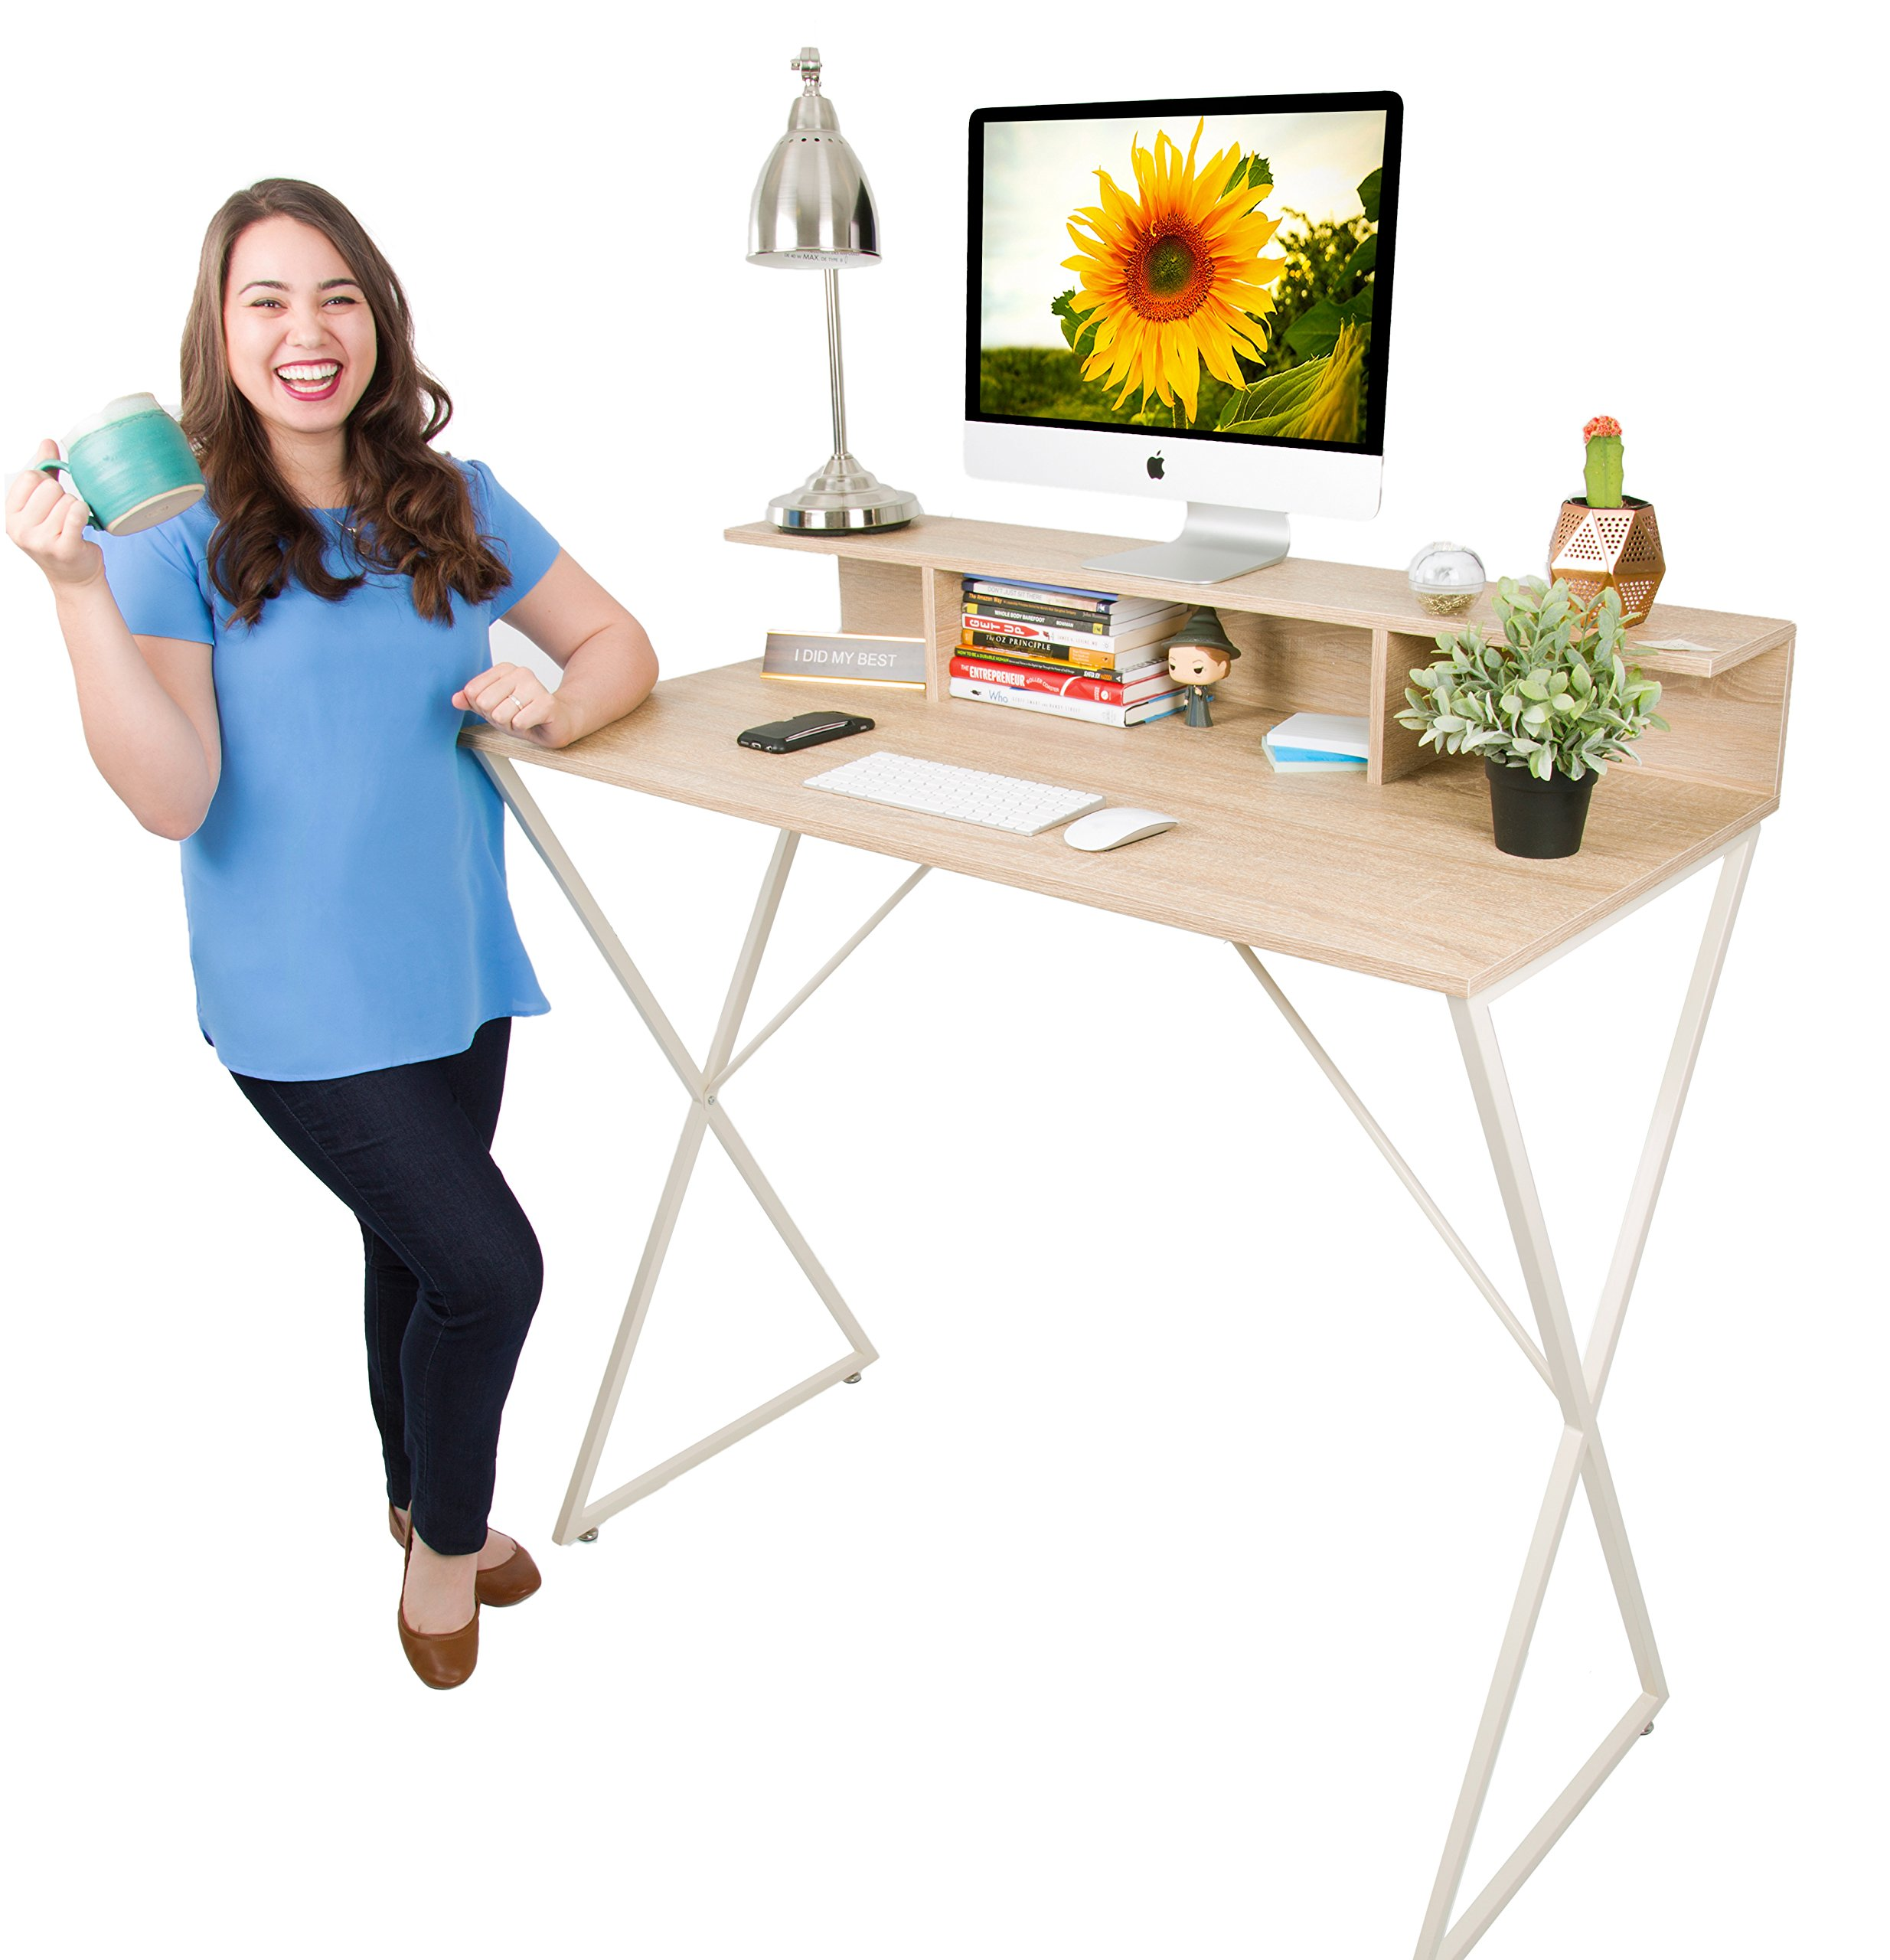 Joy Desk by Stand Steady - Modern Home Office Standing Desk Workstation with Storage Cubbies! - 47.5'' x 41.5''